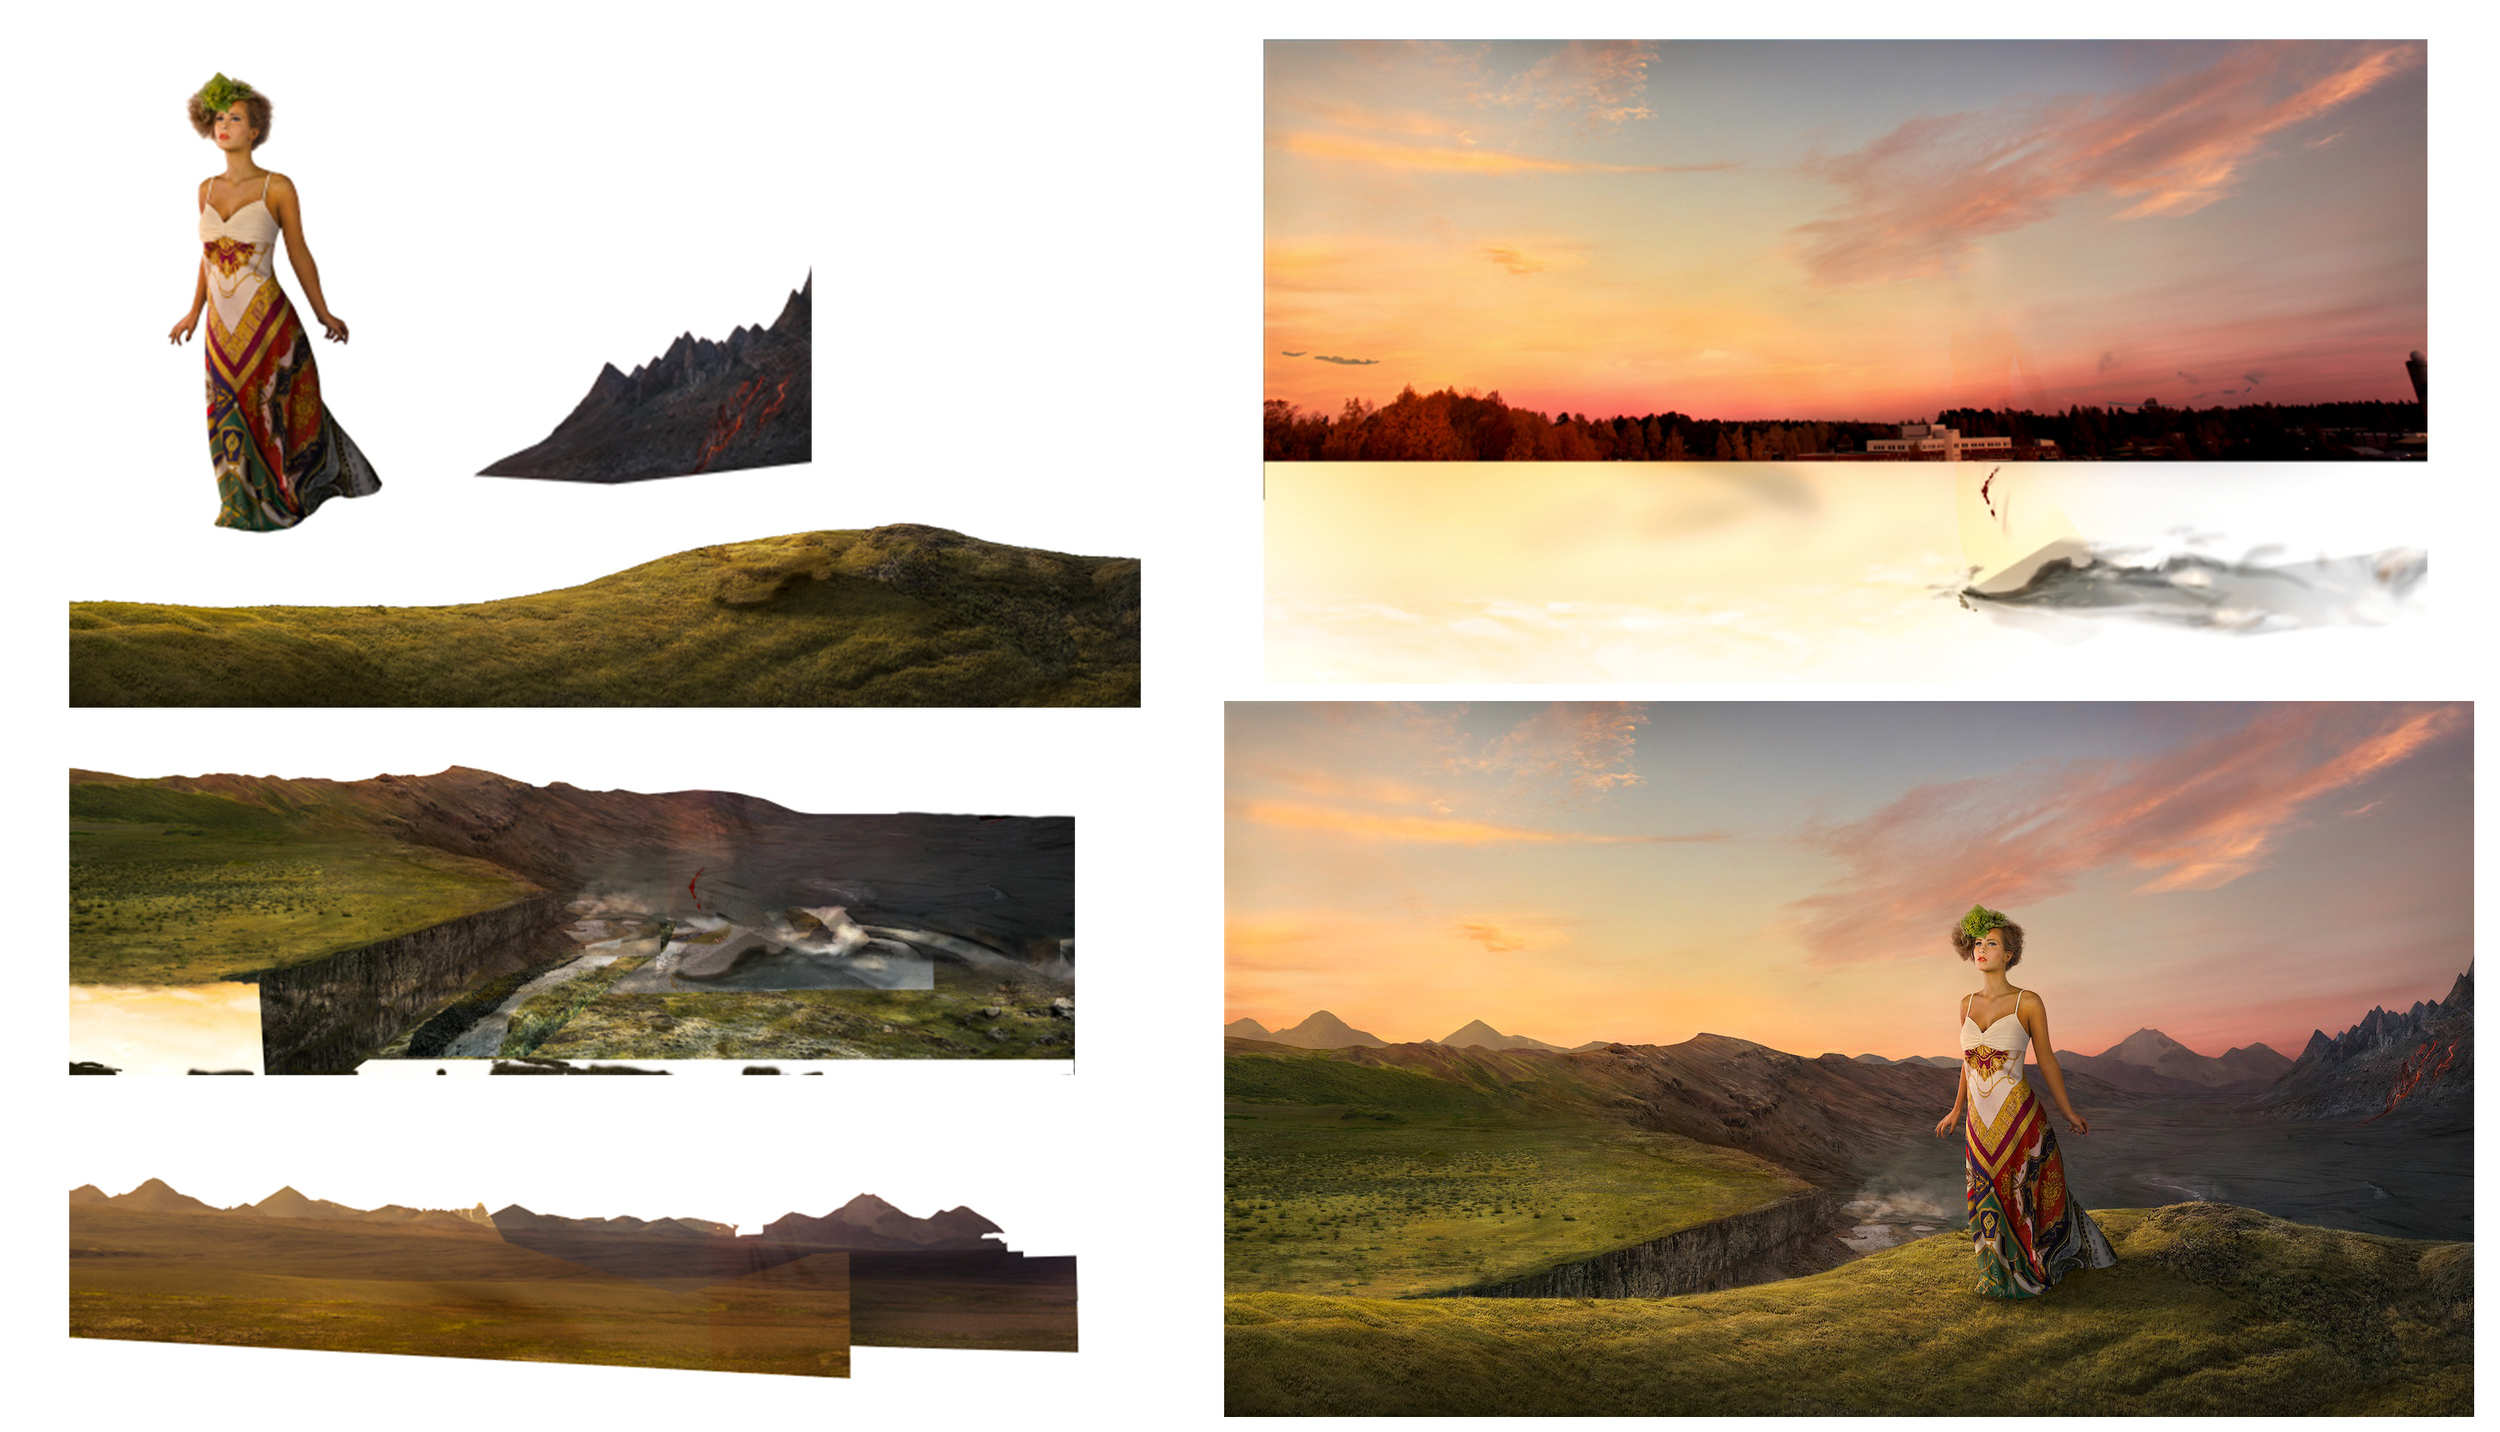 A quick PSD-breakdown of the final photo.